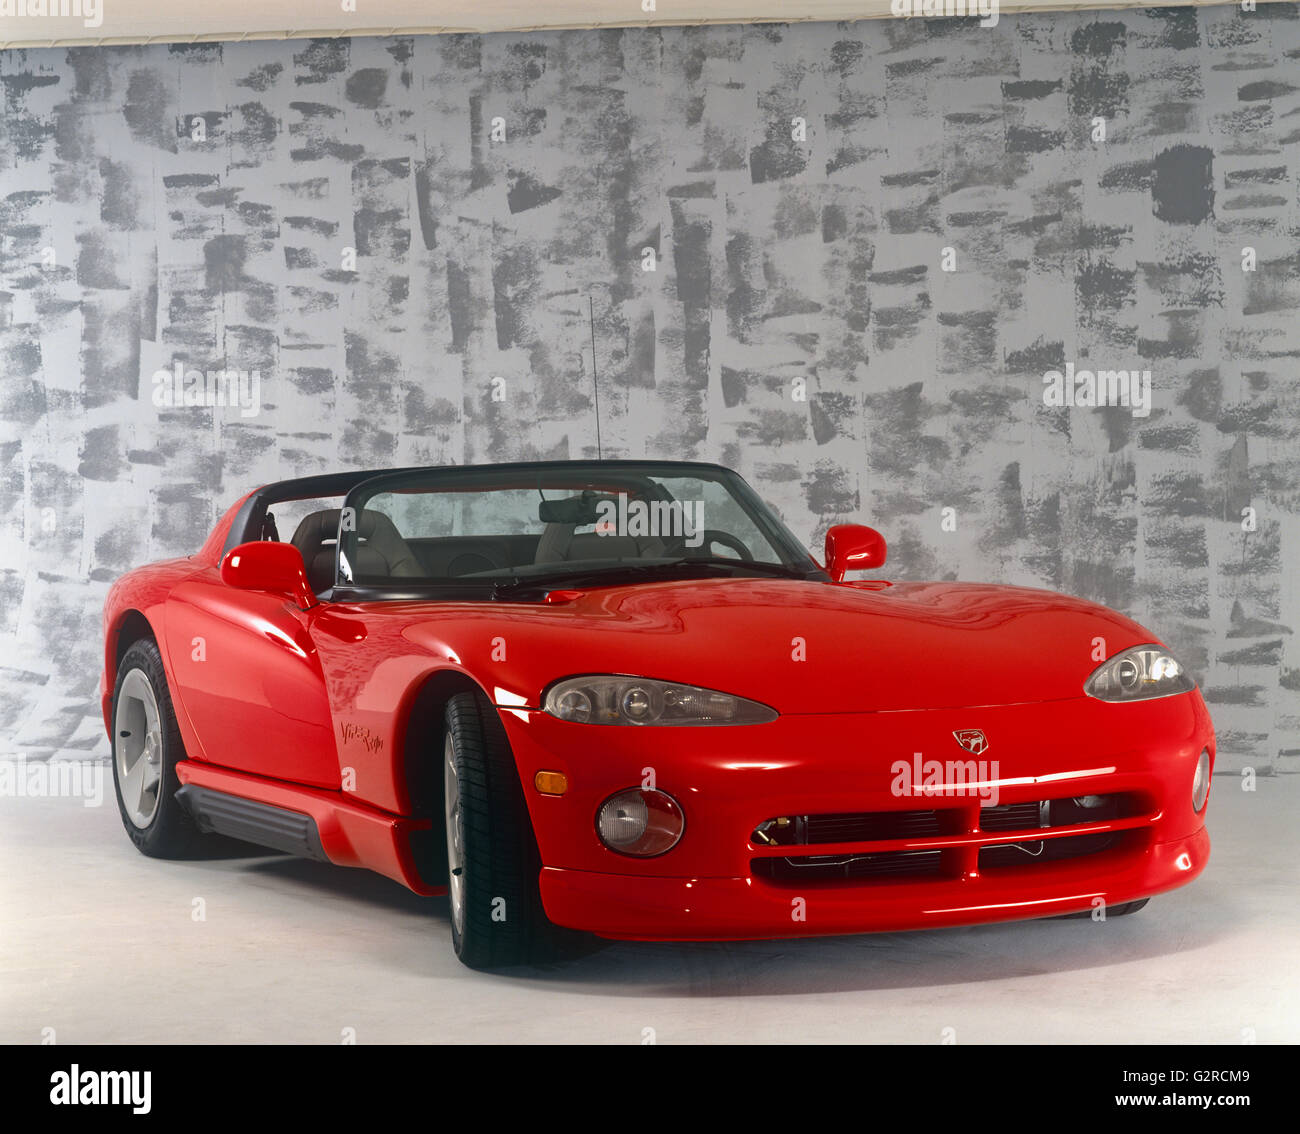 Dodge Viper in red - Stock Image